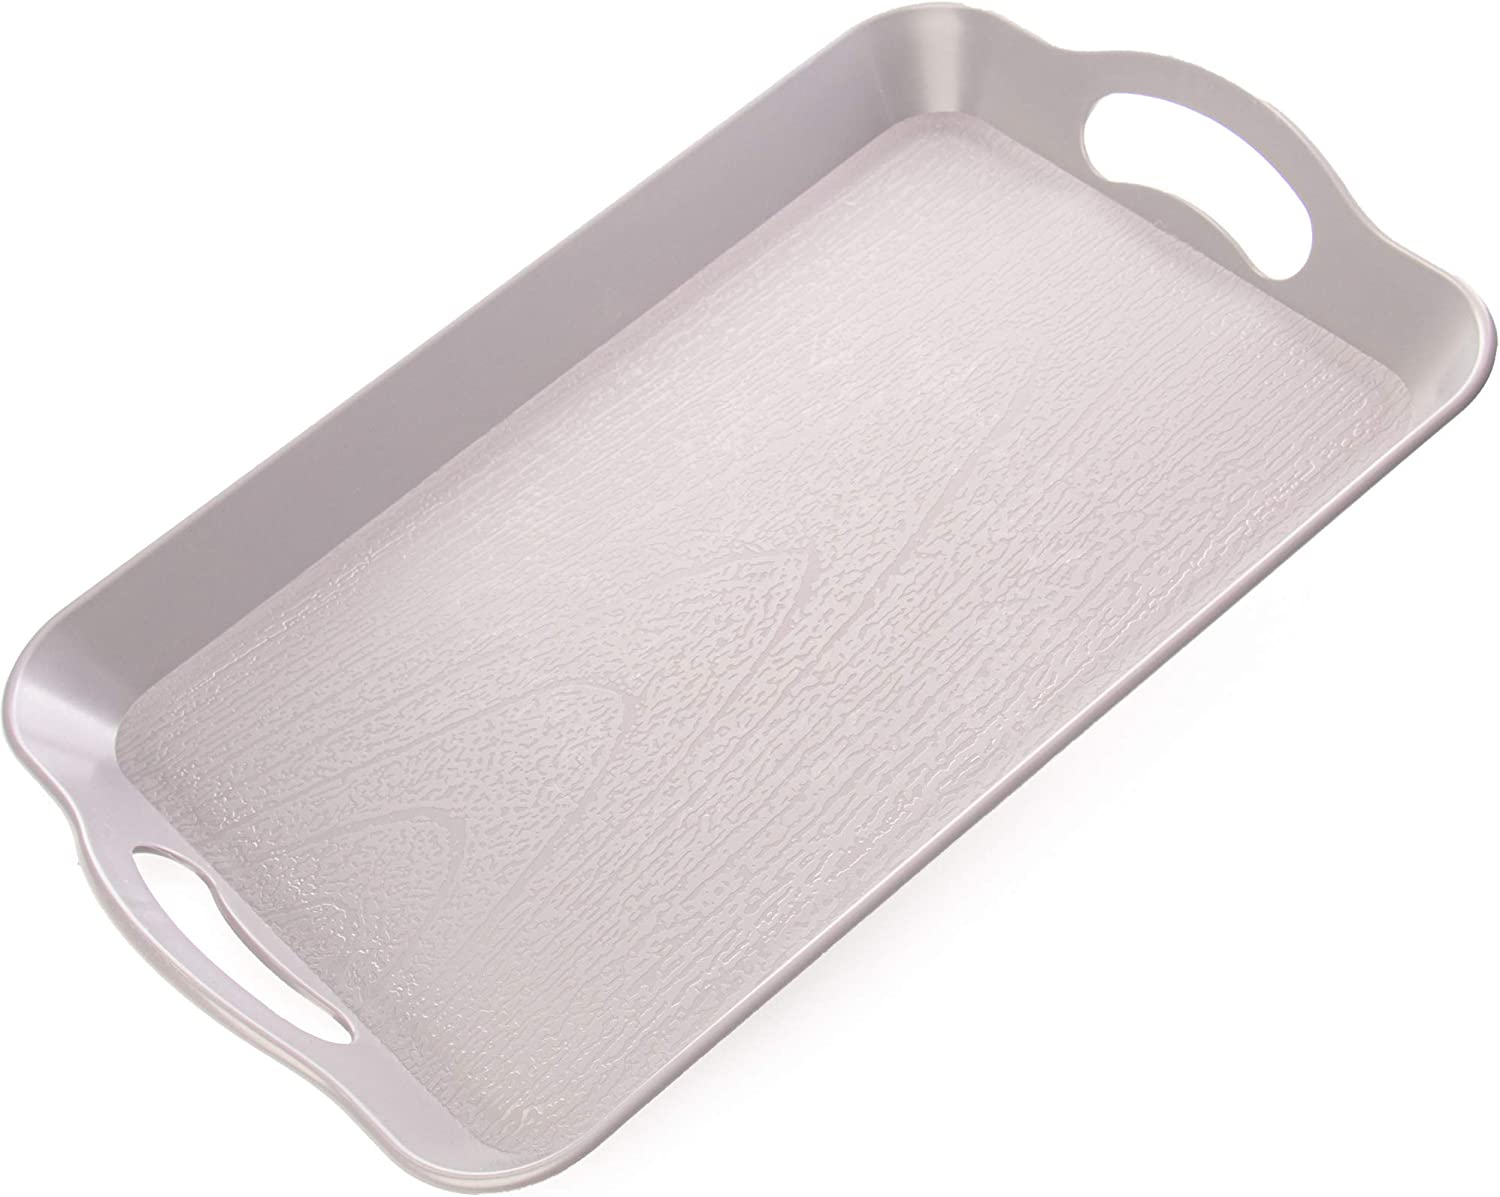 Handled Cafeteria Trays - 14